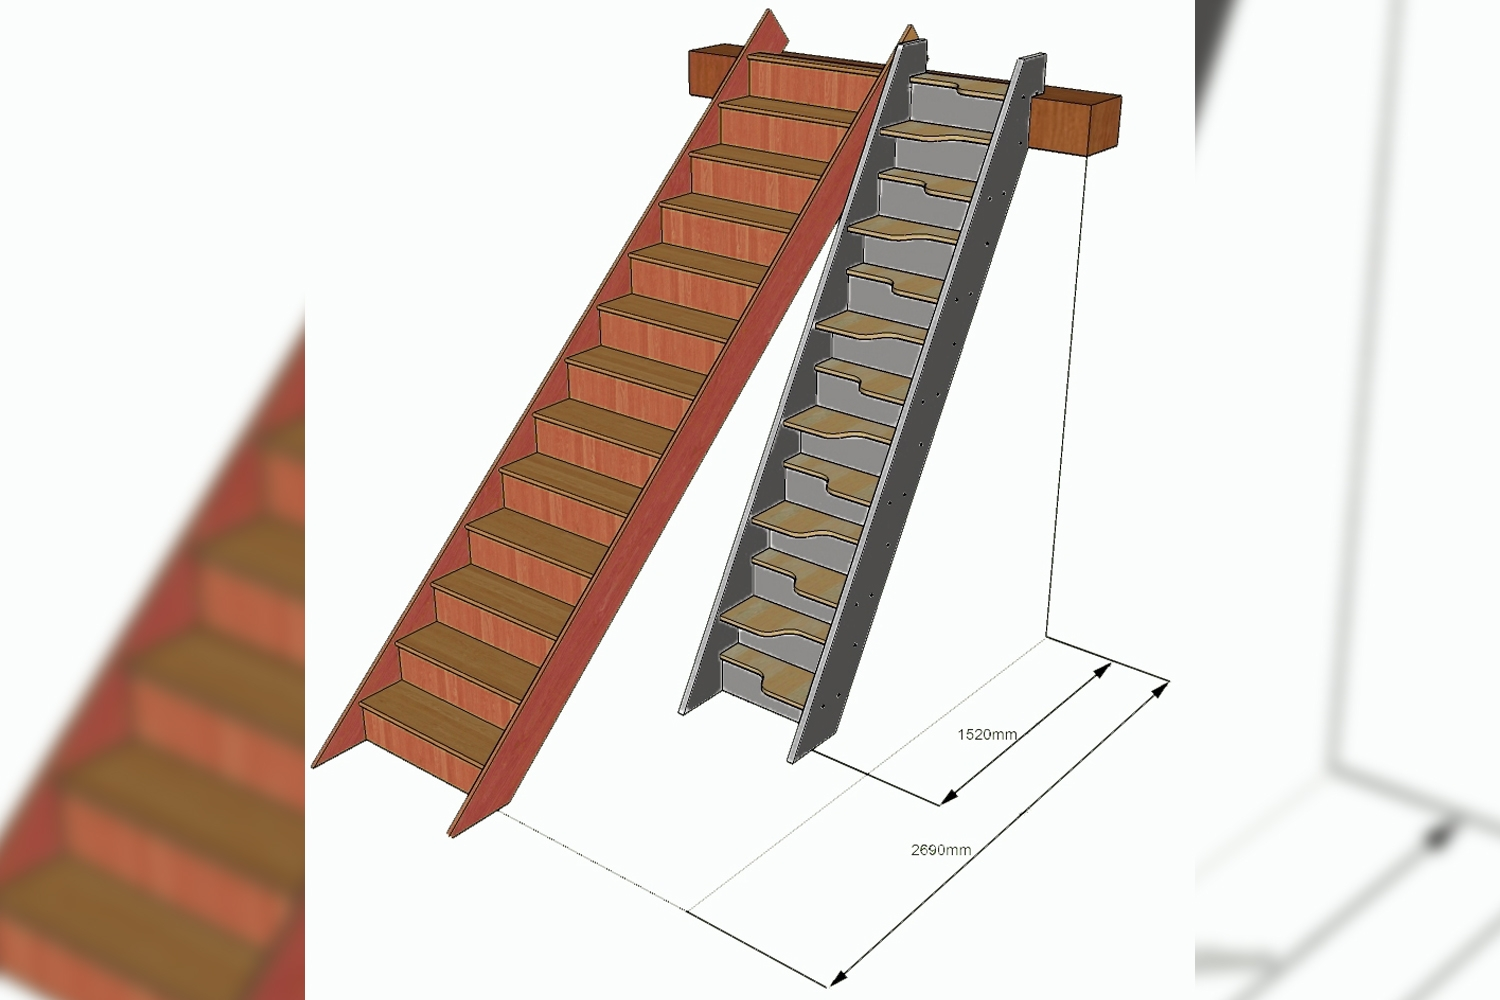 paddle stairs, apace saver, staircase